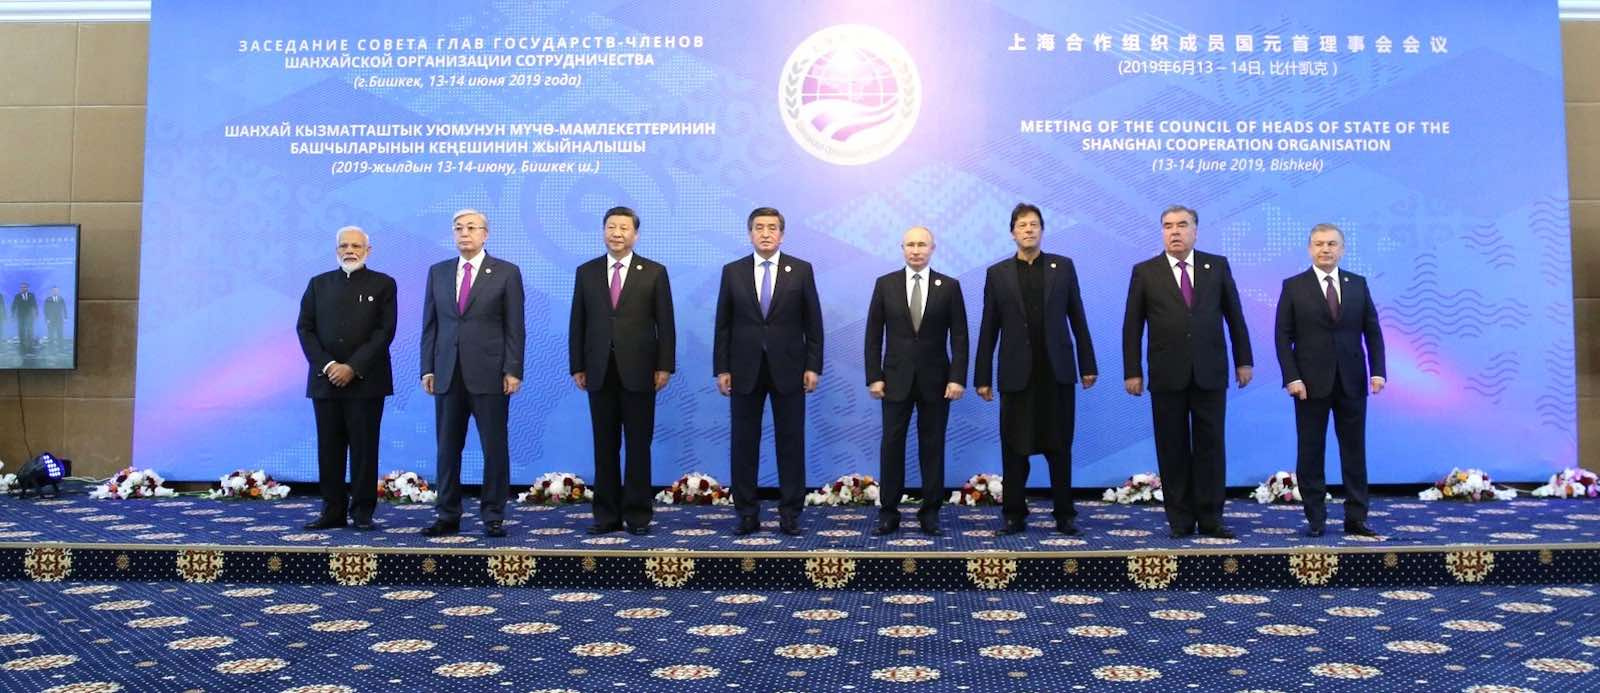 Shanghai Cooperation Organisation's Heads of State Council in June, Bishkek, Kyrgyzstan (Photo: Kremlin.ru)